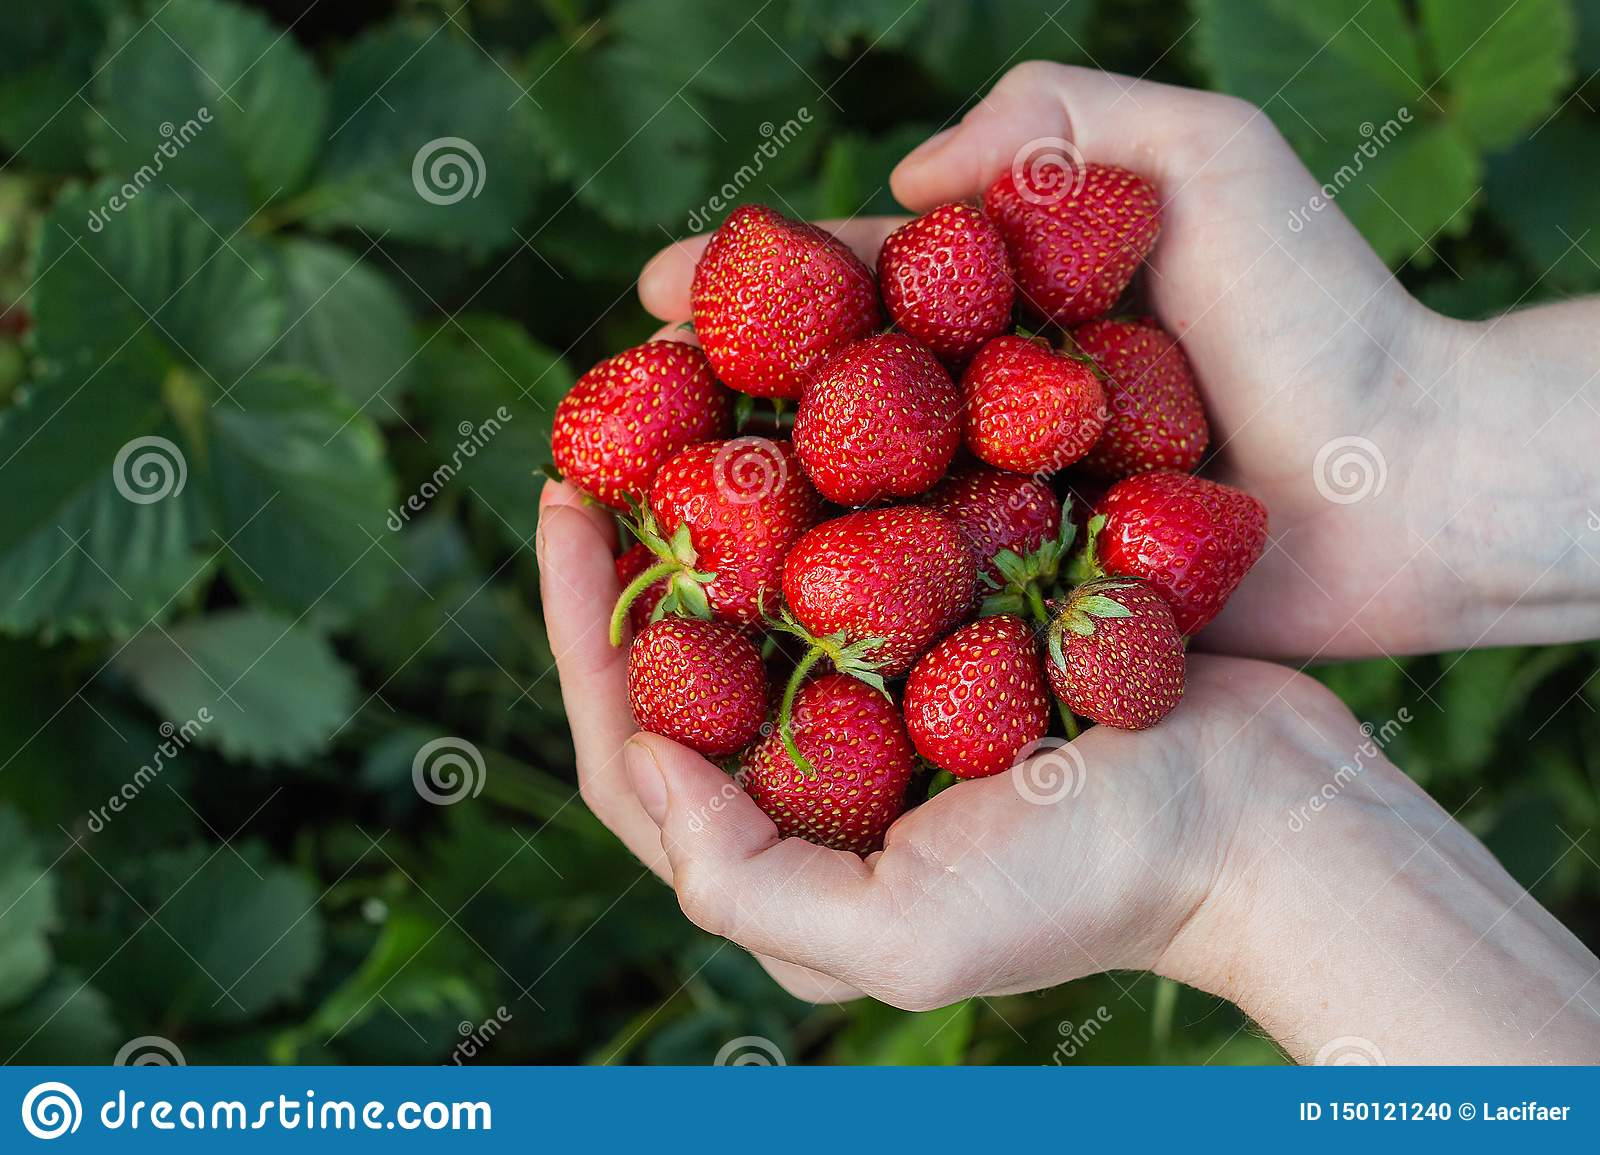 Women& x27;s hands hold a handful of fresh strawberries